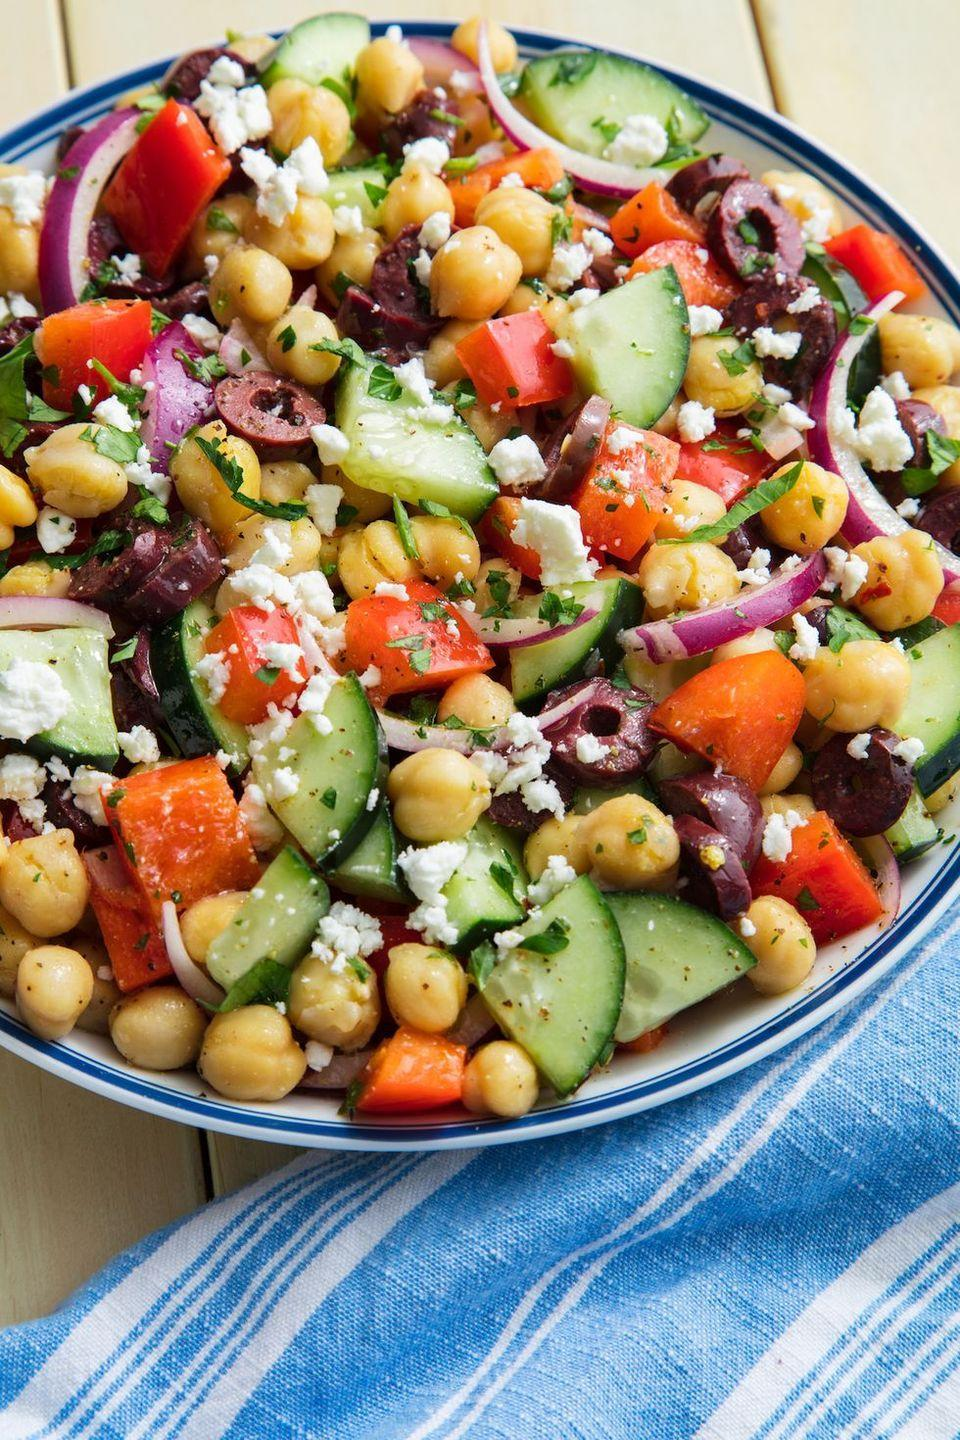 "<p>Thanks to the chickpeas, this salad will keep you full for hours. It's satisfying in a way that leafy greens never could be. Sorry not sorry, kale.</p><p>Get the <a href=""https://www.delish.com/uk/cooking/recipes/a29843193/mediterranean-chickpea-salad-recipe/"" rel=""nofollow noopener"" target=""_blank"" data-ylk=""slk:Mediterranean Chickpea Salad"" class=""link rapid-noclick-resp"">Mediterranean Chickpea Salad</a> recipe.</p>"